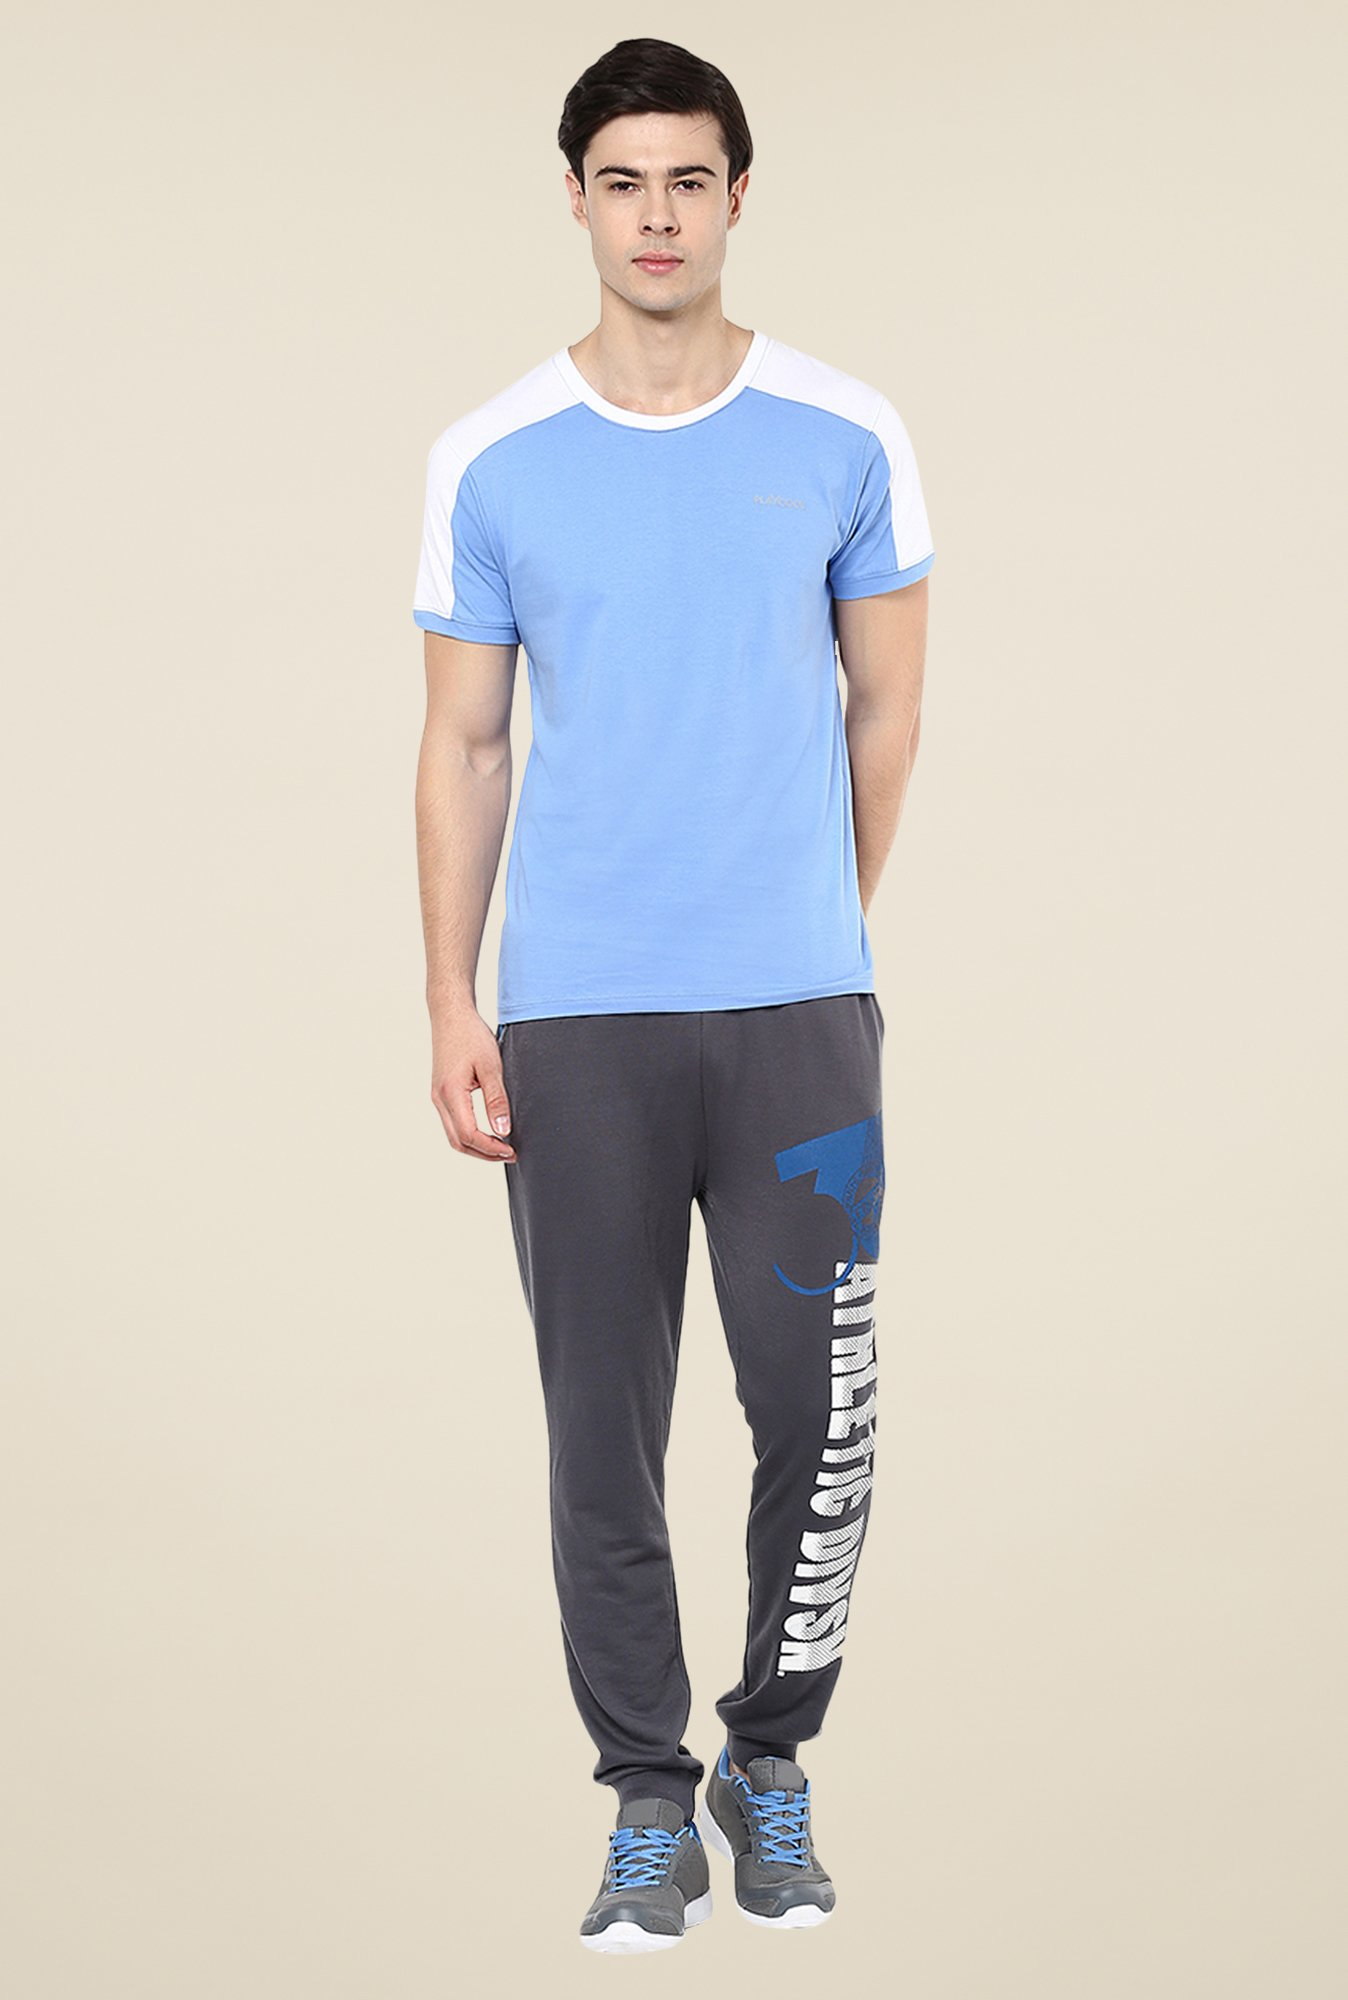 Yepme Blue Tim High Performance Active Solid T-shirt